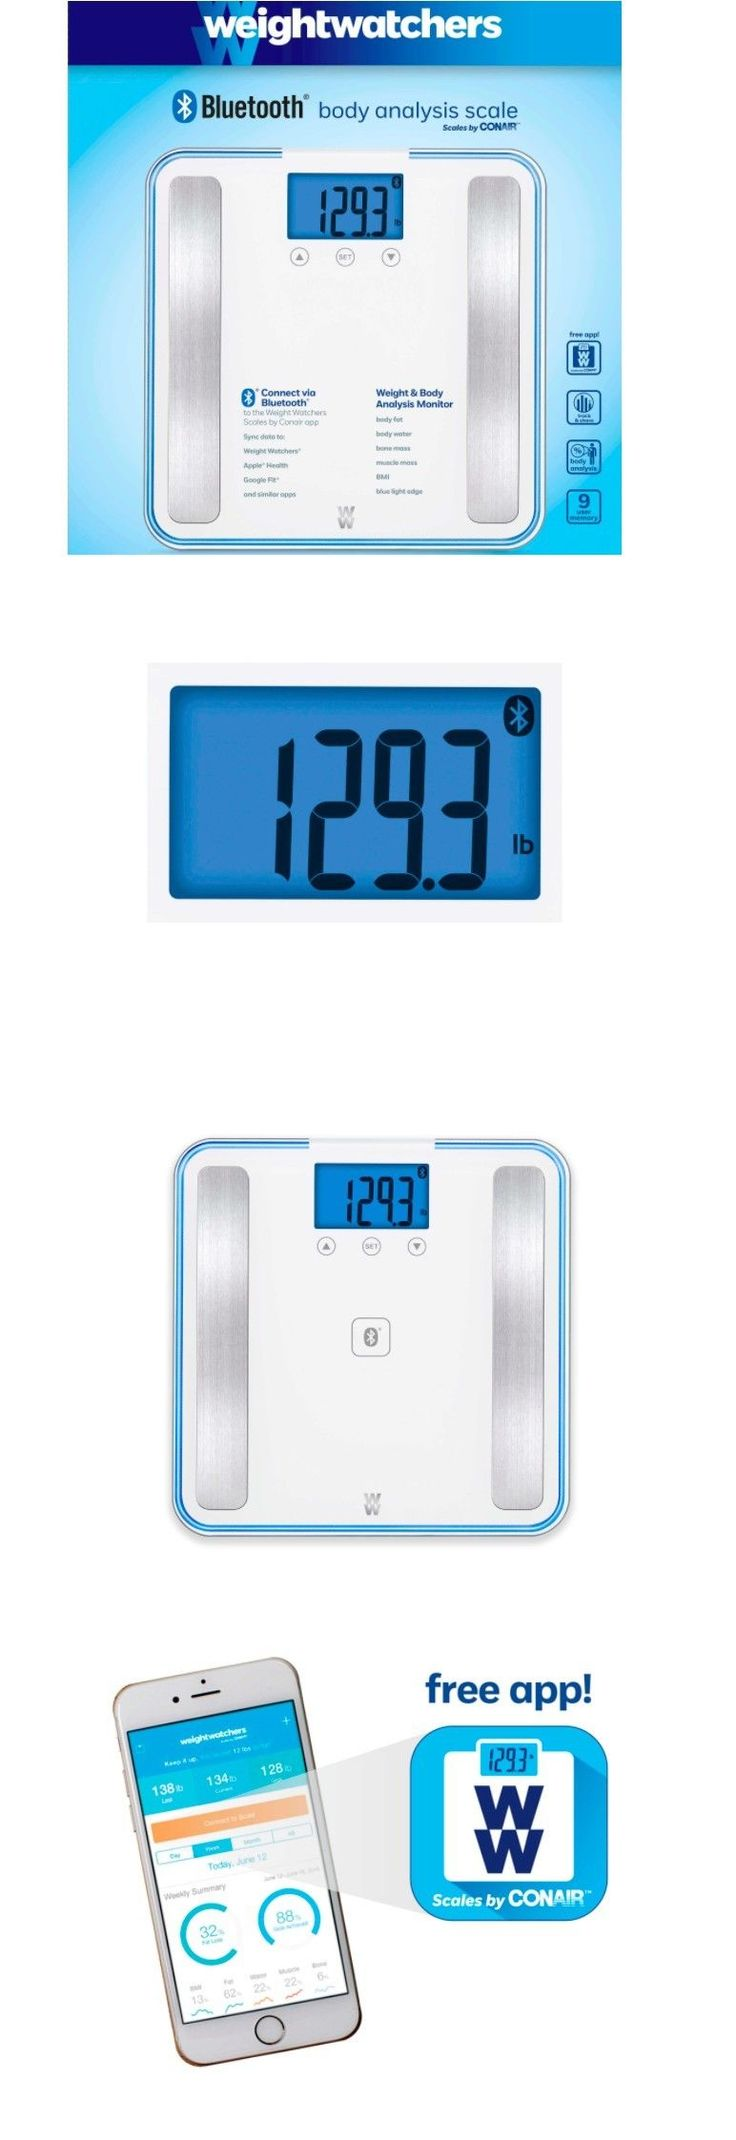 Scales: Weight Watchers Smart Digital Bluetooth Glass Bathroom Scale Body Fat Analysis BUY IT NOW ONLY: $89.99